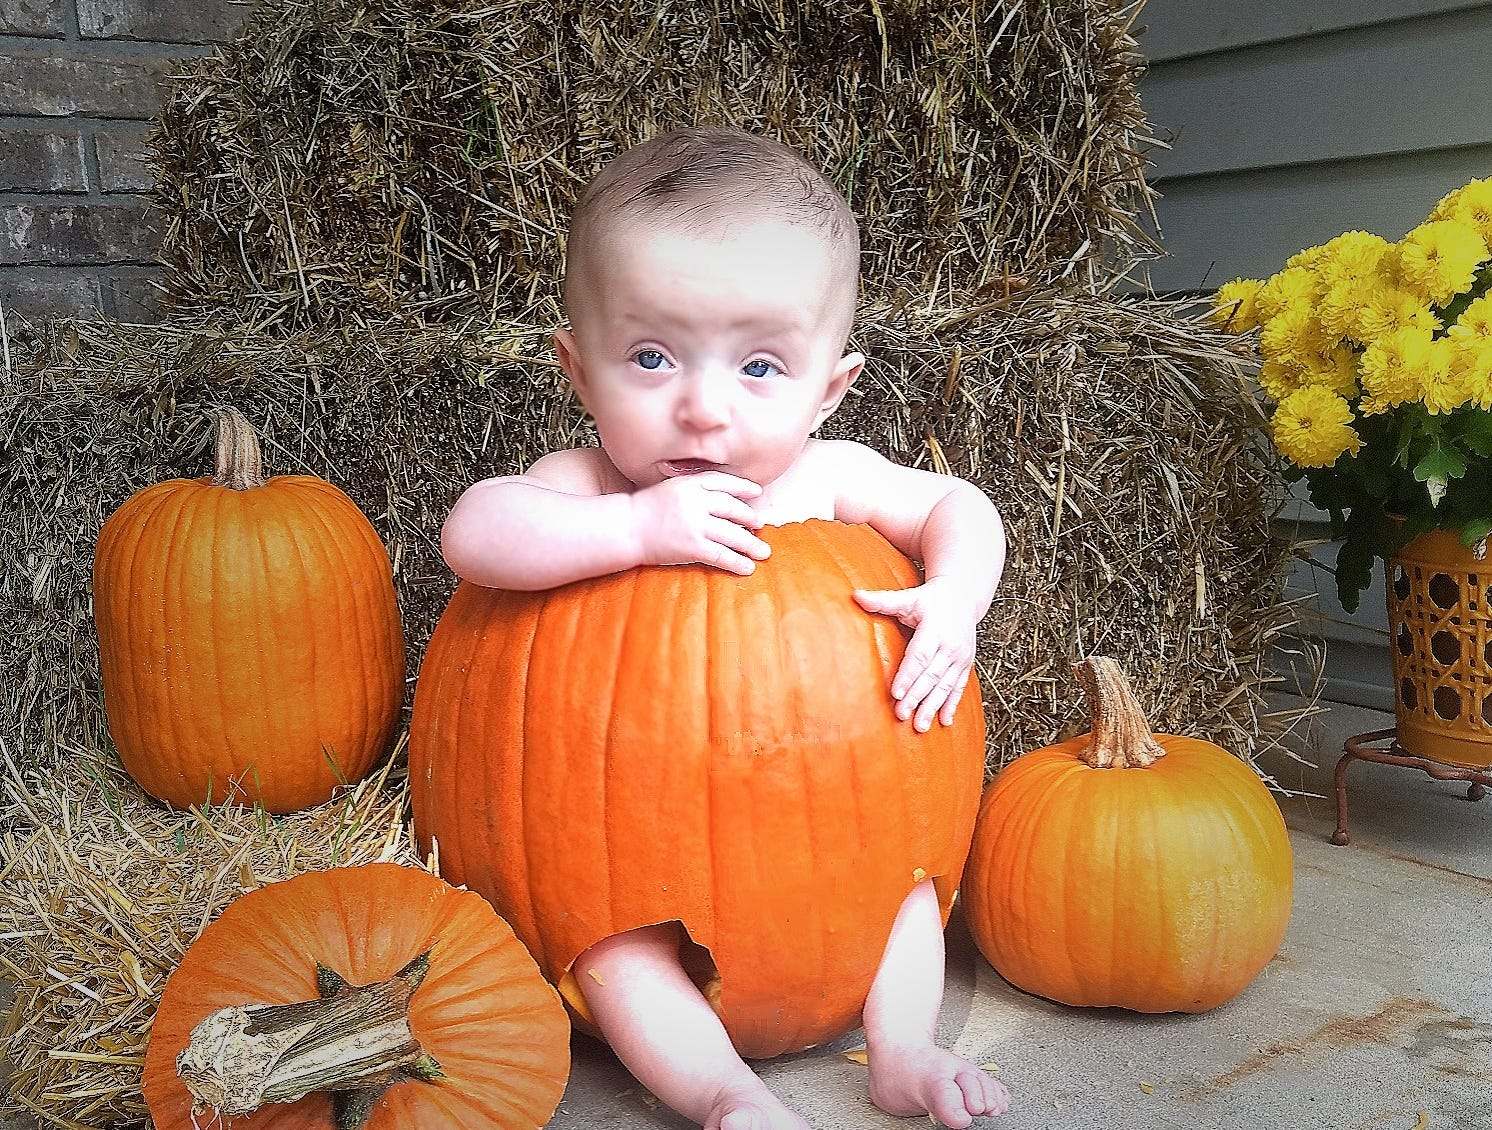 Peyton Schmunk, 5 months. Parents are Mike and Danielle Schmunk of Oshkosh.